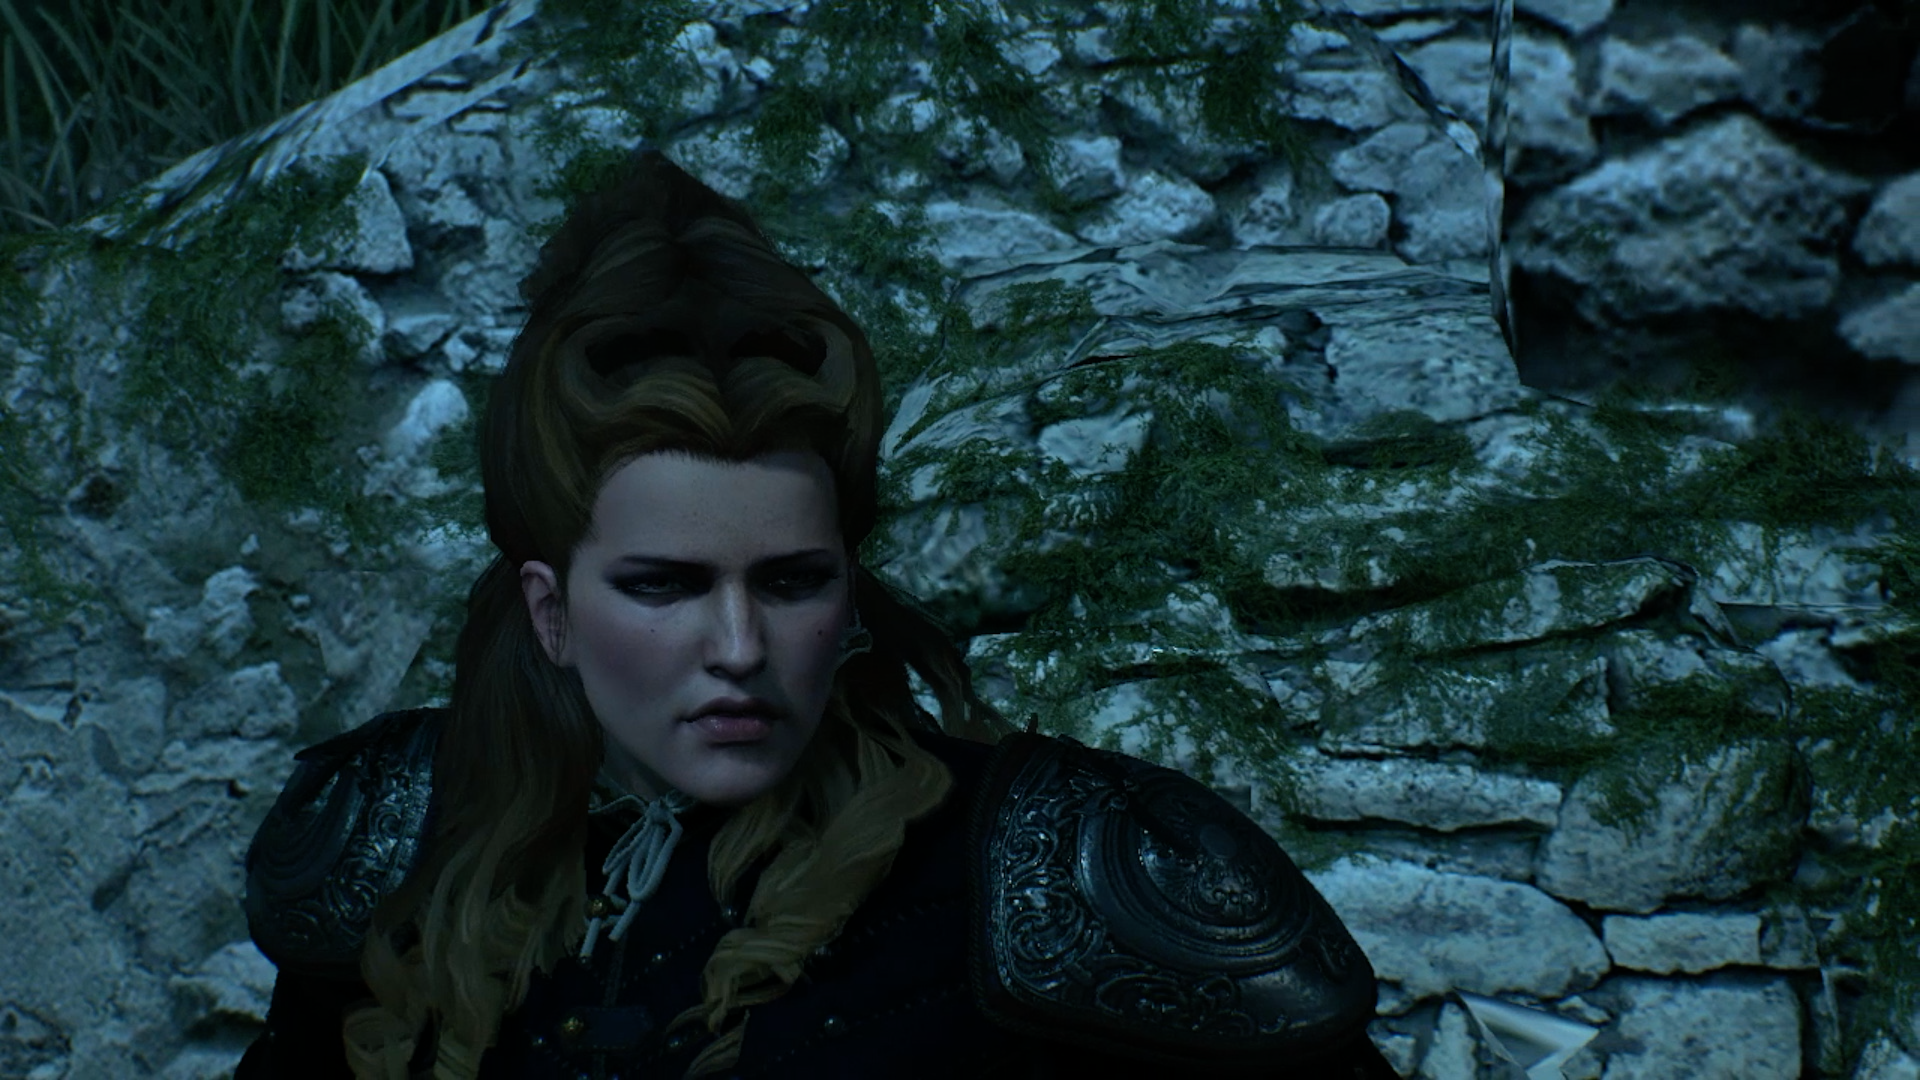 Movie:  Yveline, a tale from the world of The Witcher3